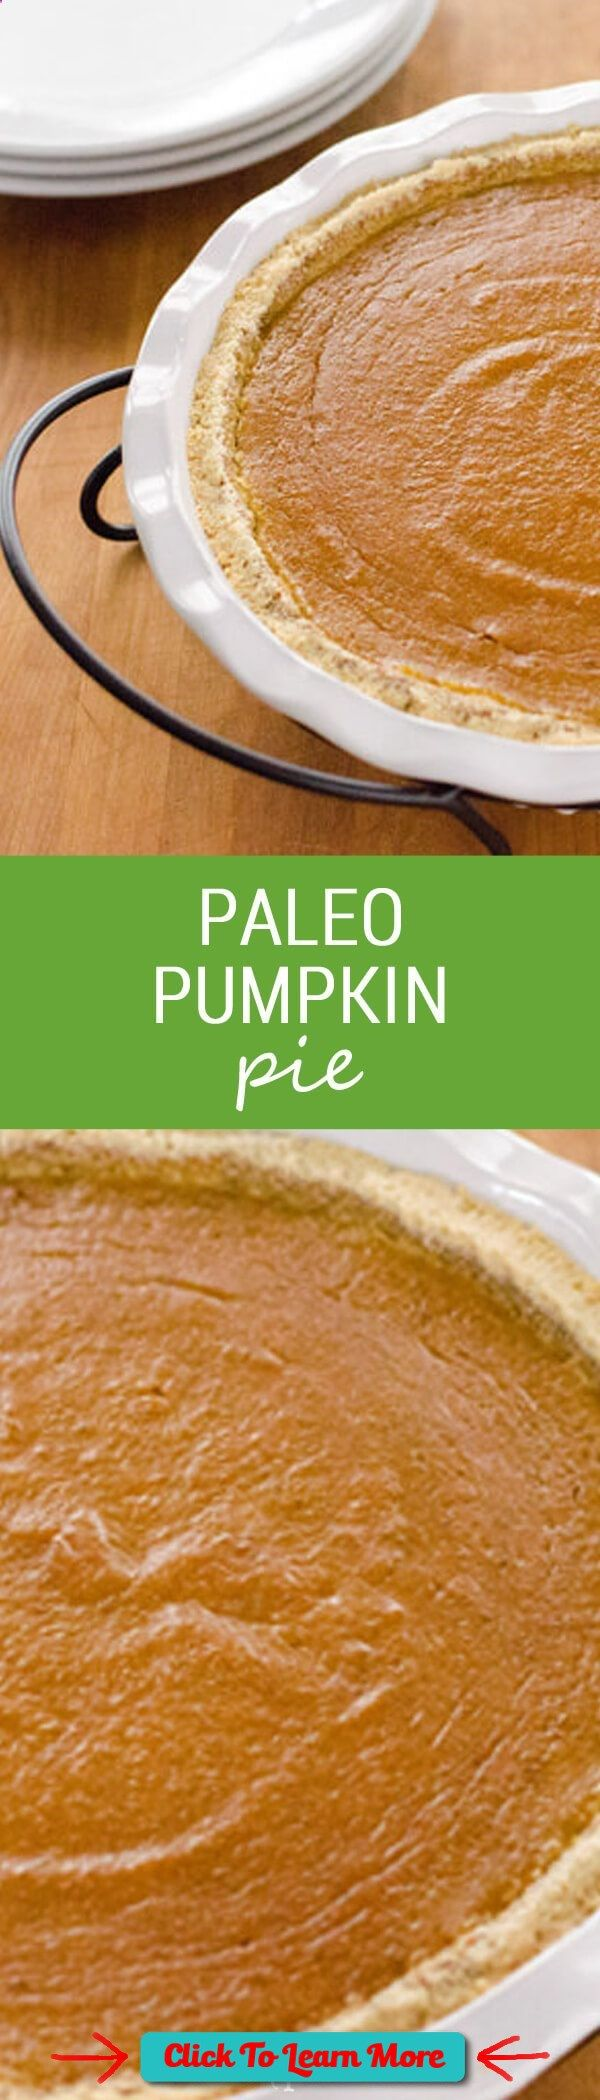 #FastestWayToLoseWeight by EATING, Click to learn more, This paleo pumpkin pie is a quick and easy gluten-free pumpkin pie recipe for fall or Thanksgiving. It's grain-free, dairy-free, and refined sugar-free. ~ cookeatpaleo.com , #HealthyRecipes, #FitnessRecipes, #BurnFatRecipes, #WeightLossRecipes, #WeightLossDiets